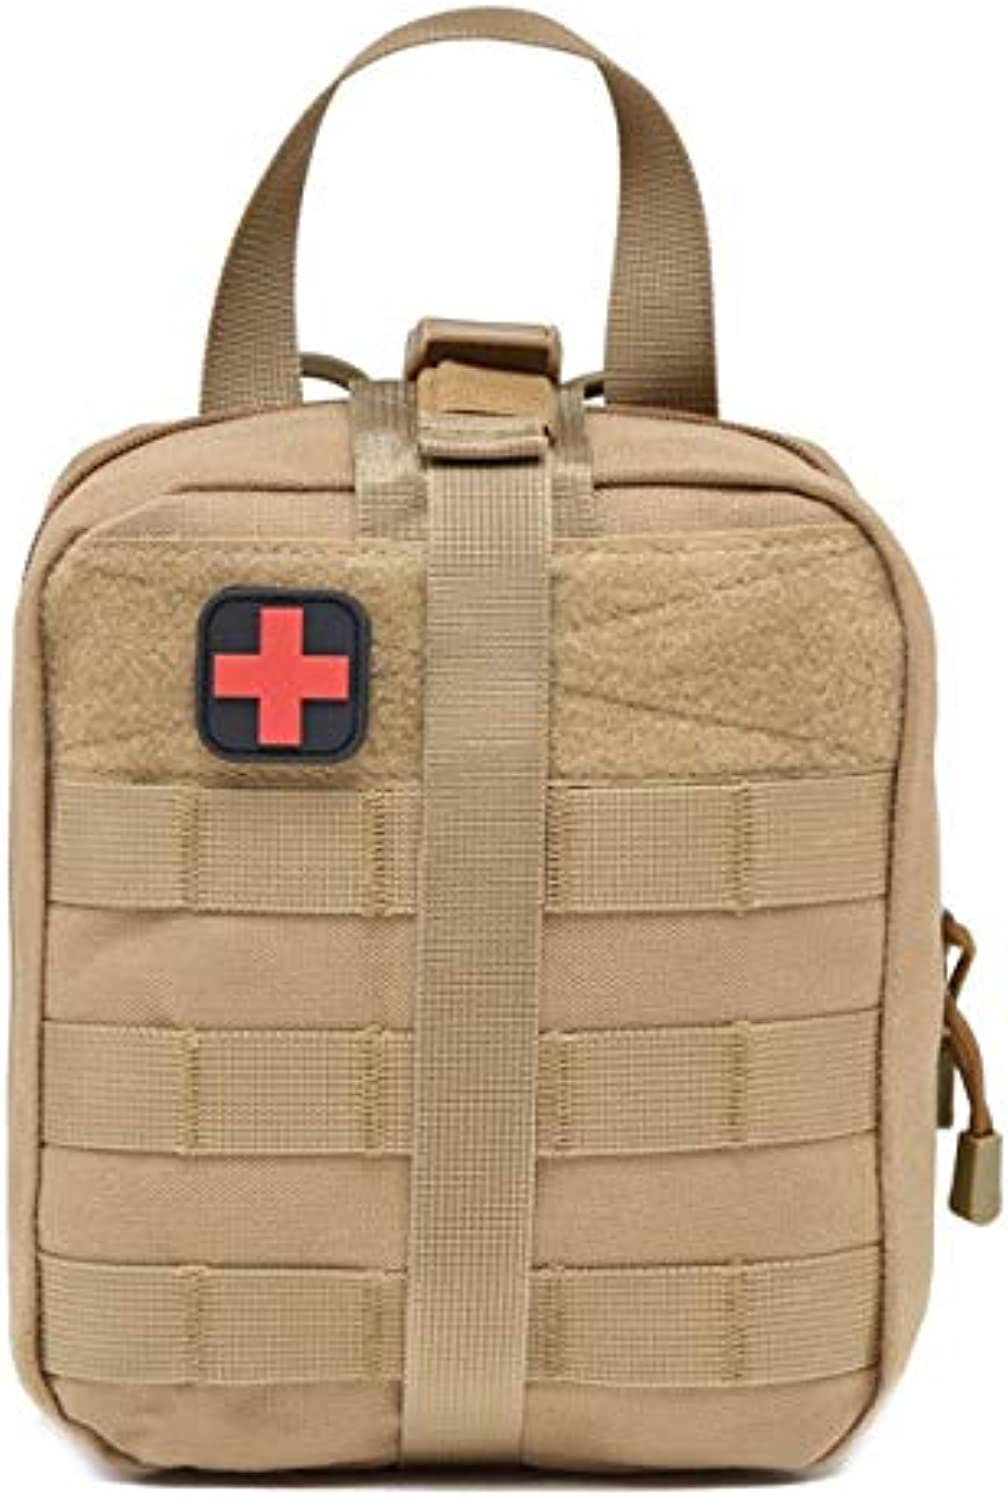 Tactical First Aid Bag Medical Sling Pouch Survival EDC EMT Bags for Car Camping Outdoor Sport First Aid Medical Supplies Bag   3